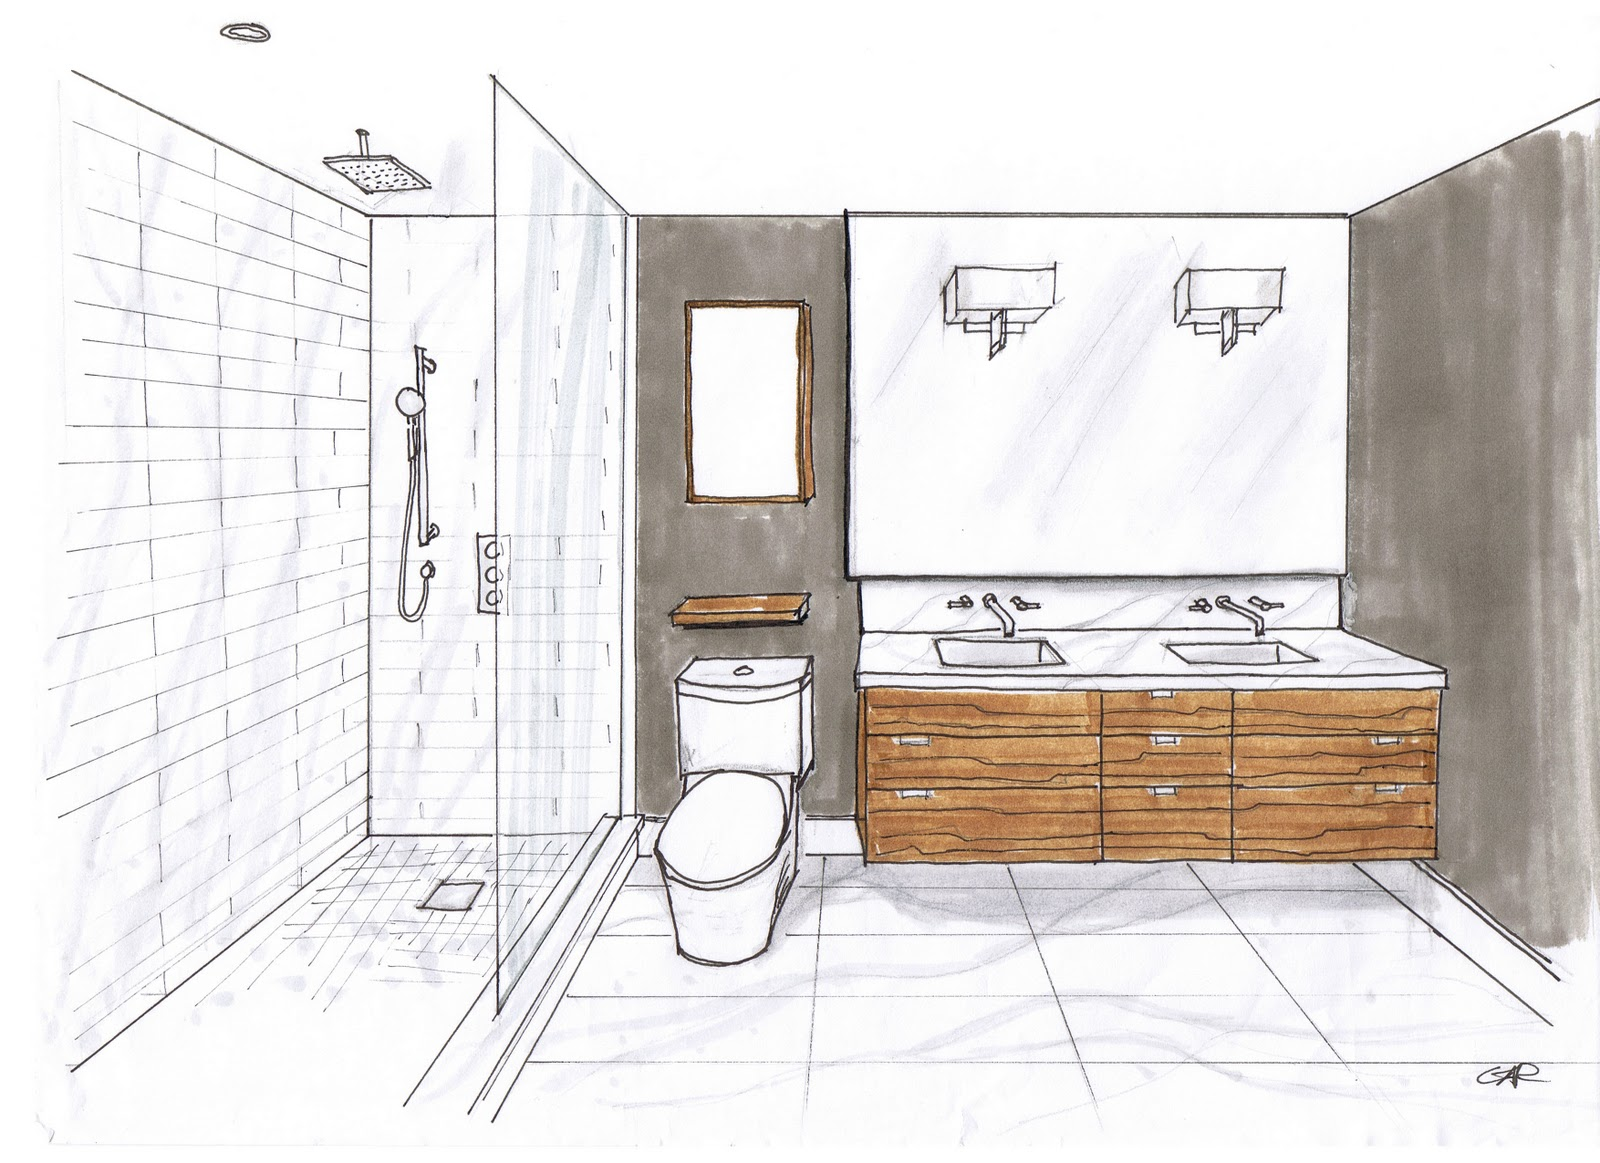 Creed january 2011 for Simple bathroom layout